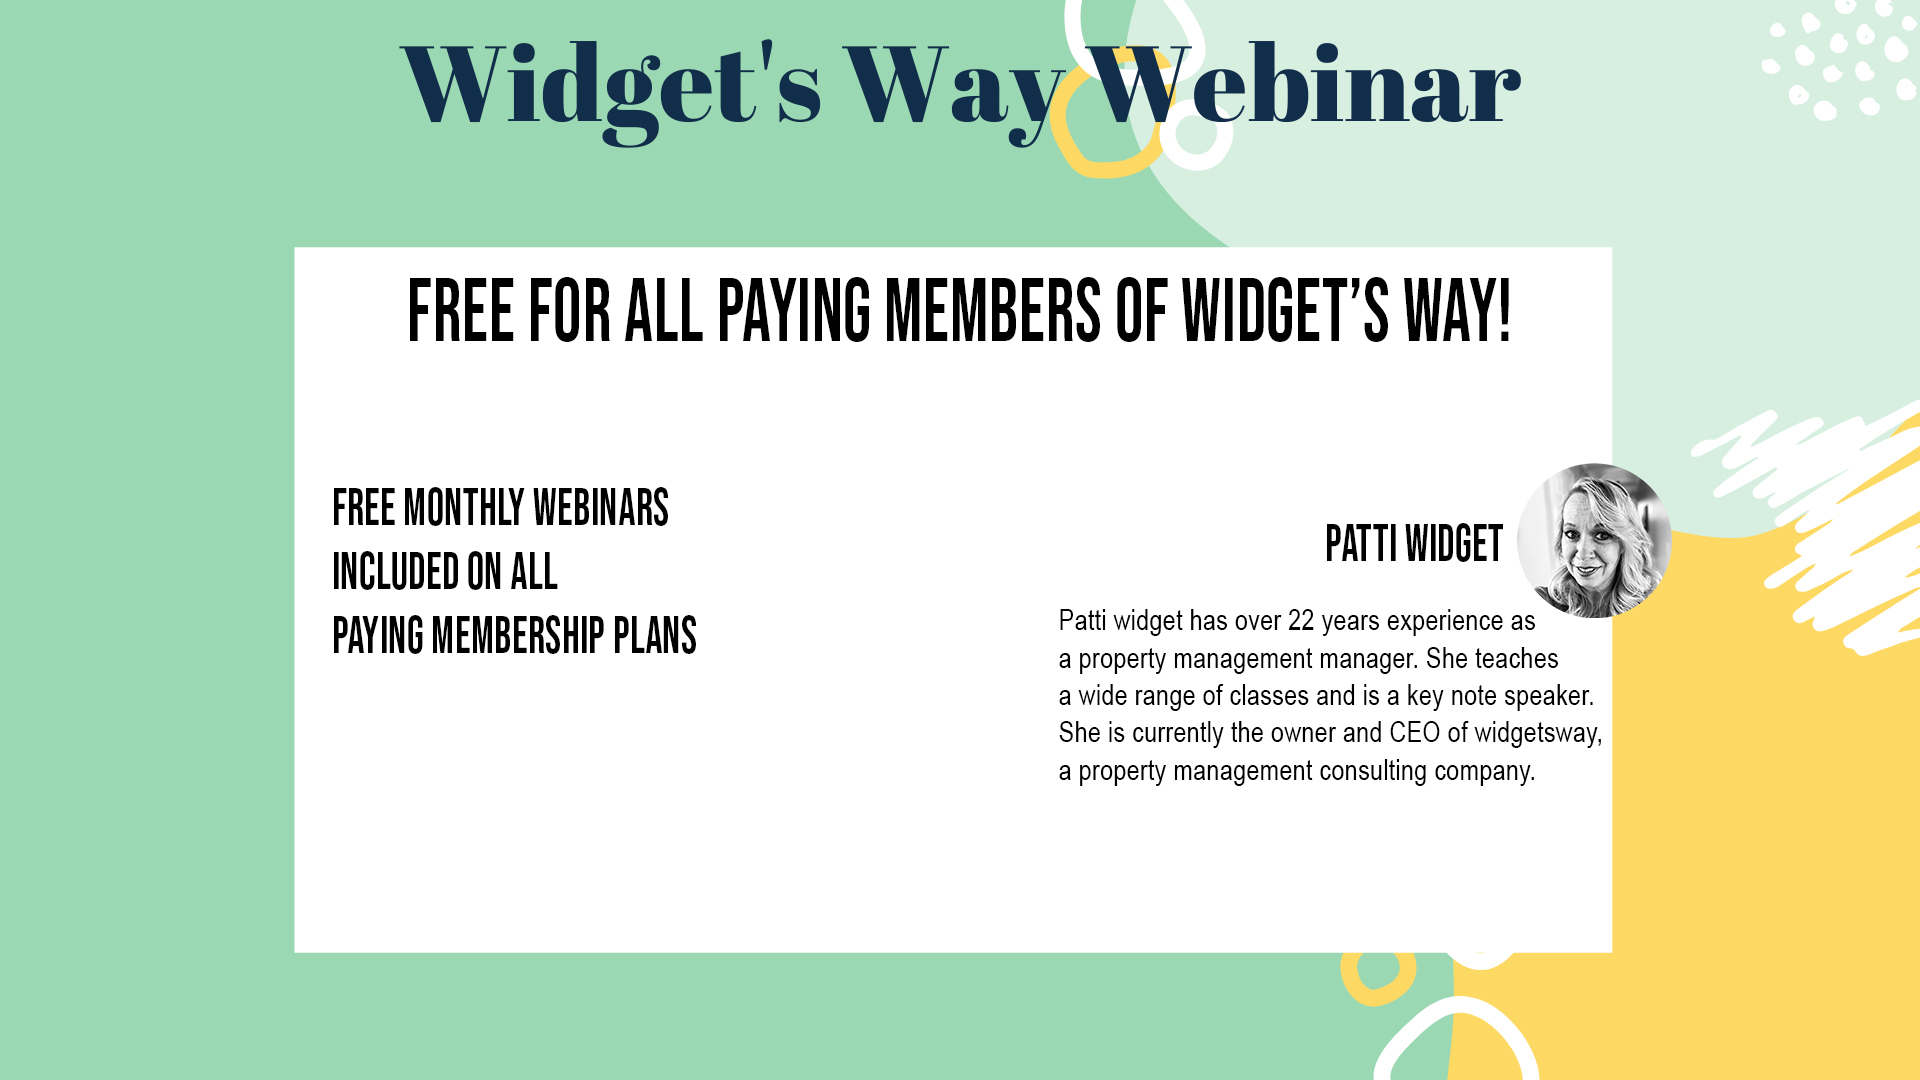 Widgets Way Member Webinars